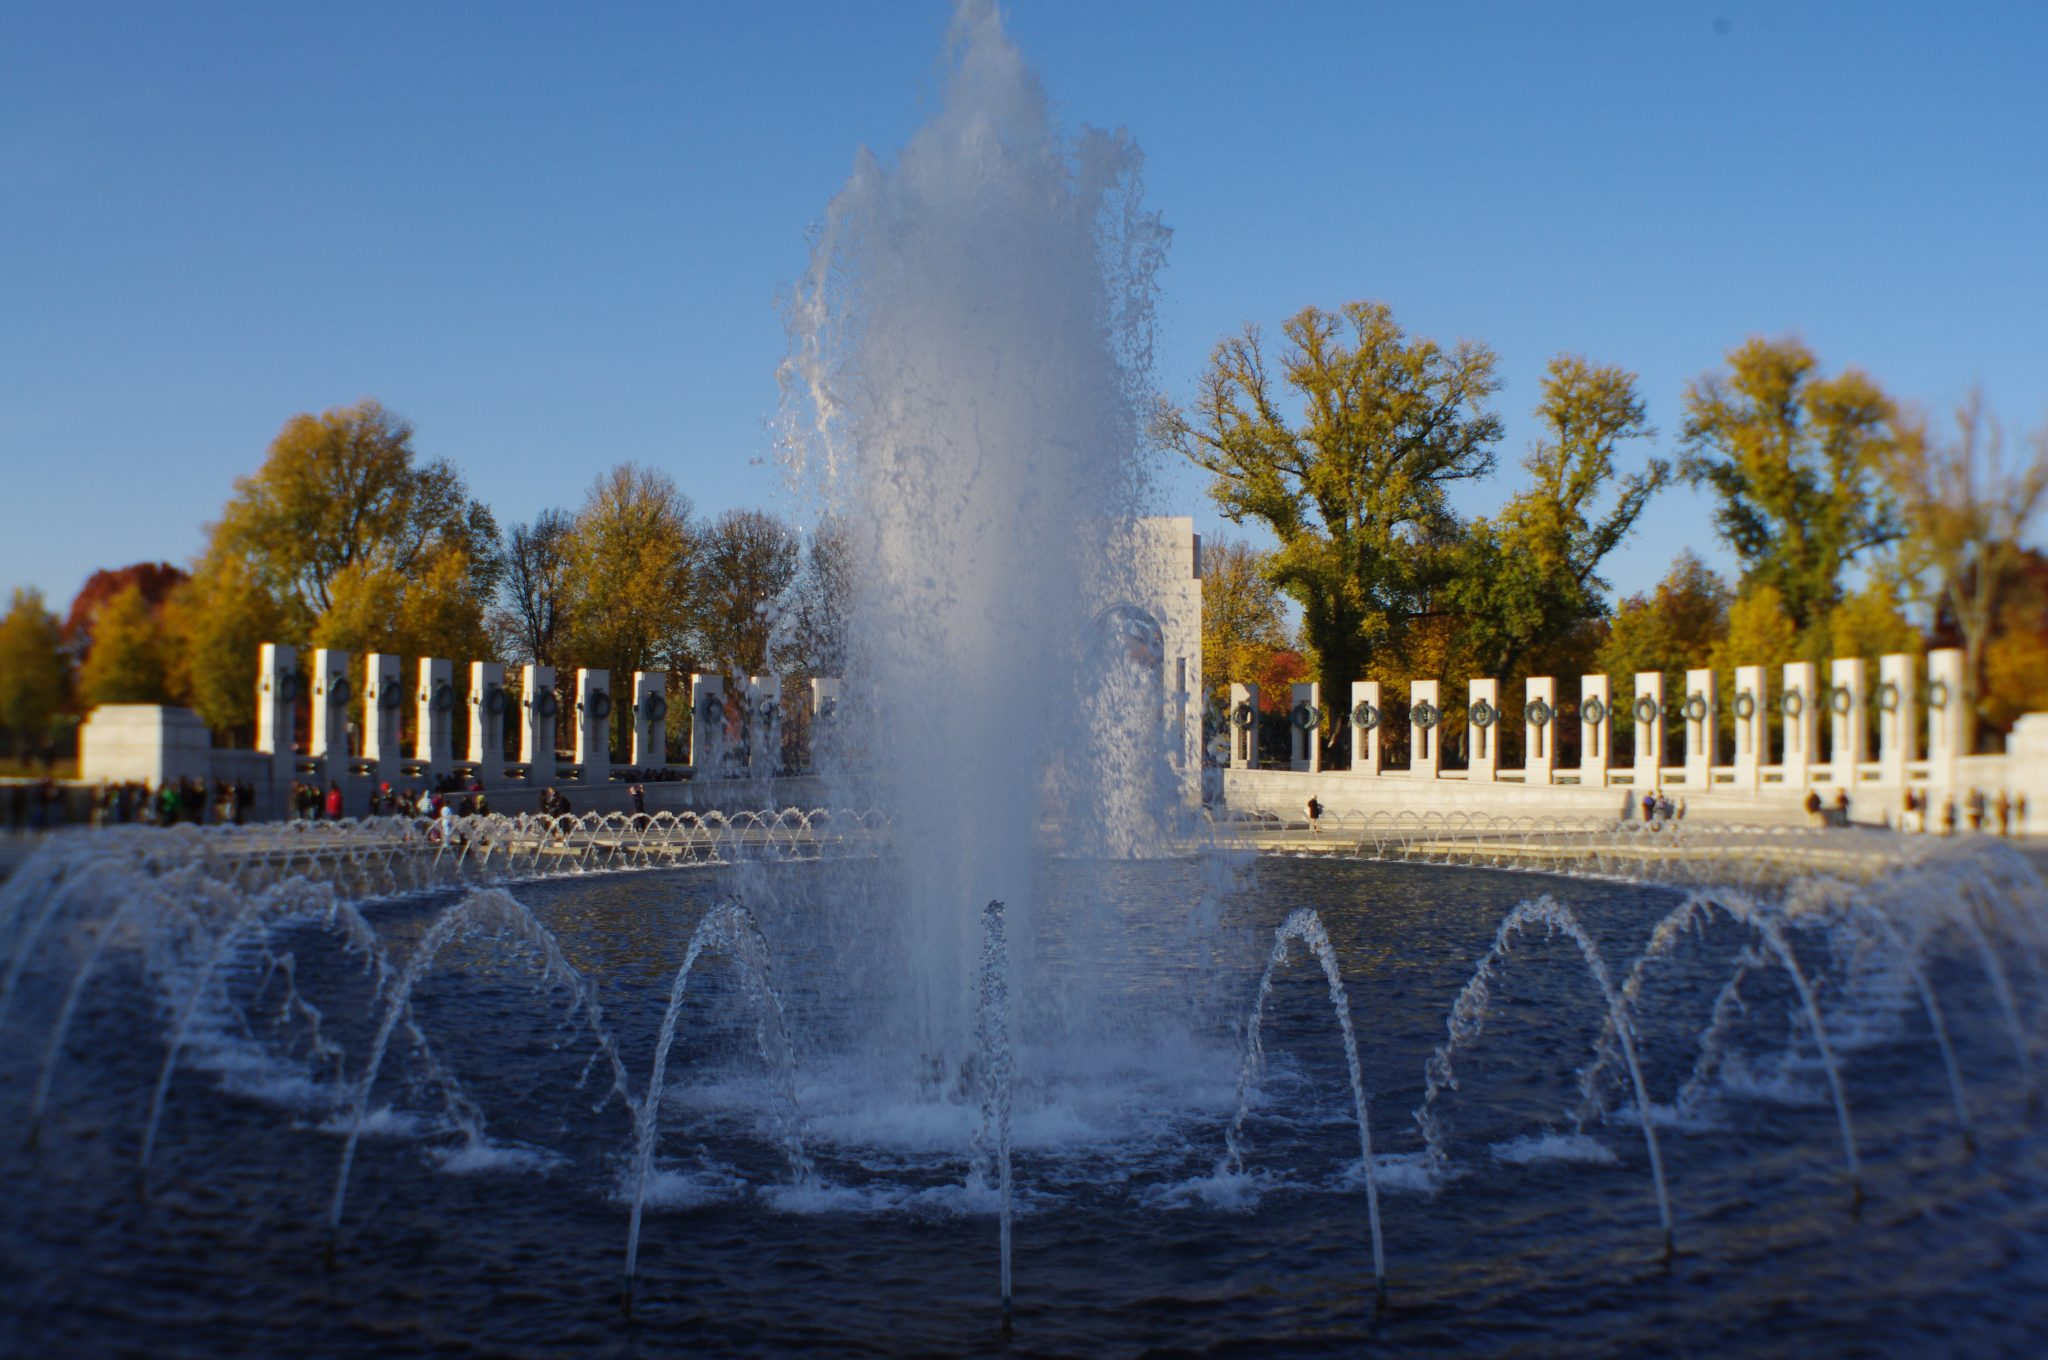 WW2 MEMORIAL FOUNTAIN IN WASHINGTON, DC DEDICATED IN 2004